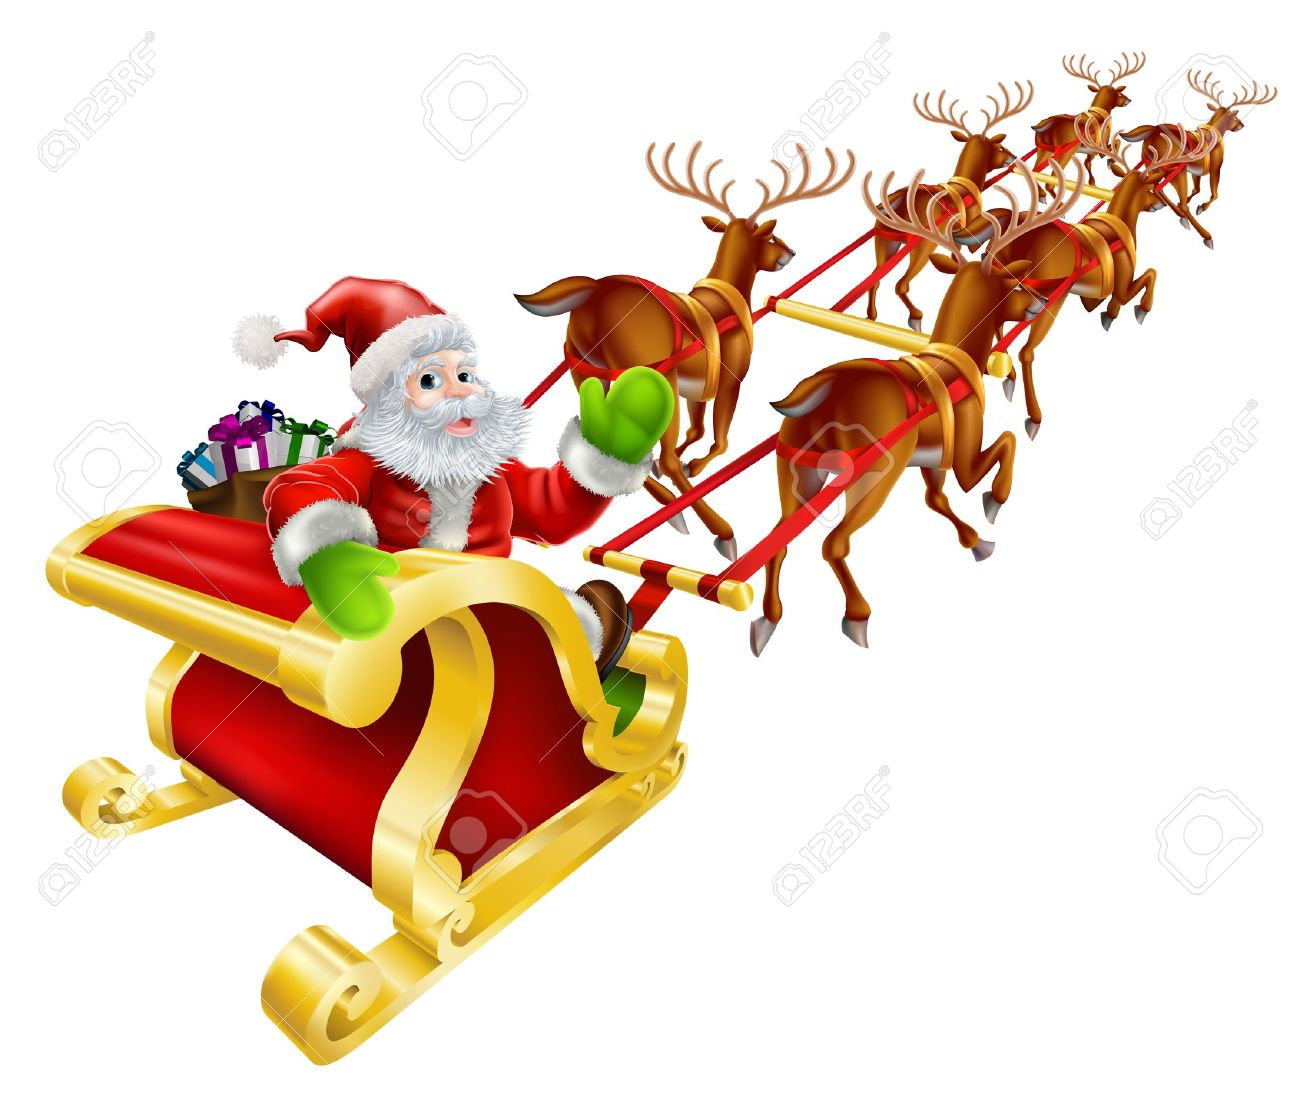 1300x1118 Christmas Illustration Of Cartoon Santa Claus Flying In His Sled